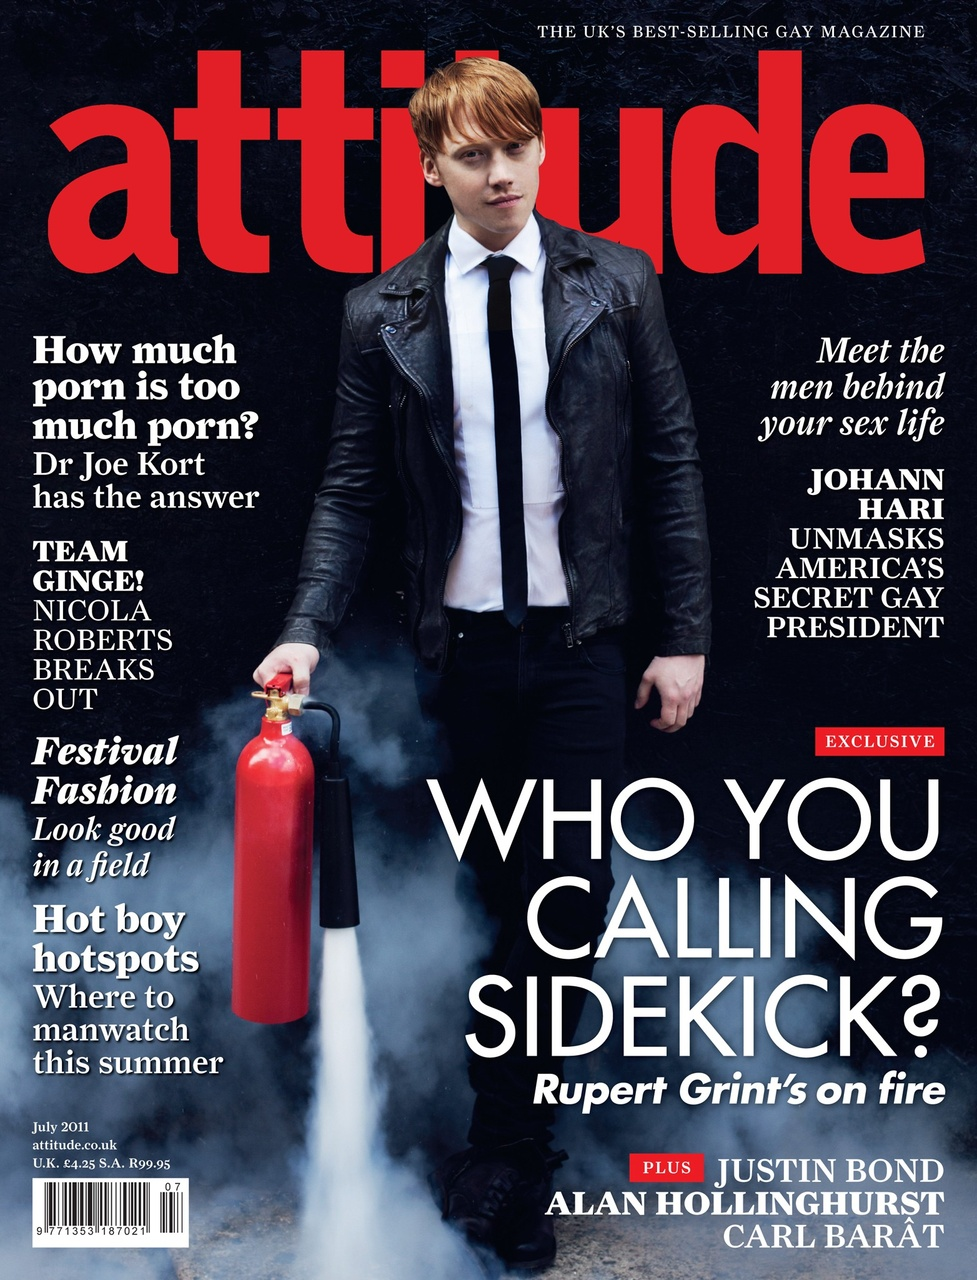 Plus exclusive chats with cabaret doyen Justin Bond Booker winner Alan  Hollinghurst and we ask just how gay is former Libertine Carl Barat?